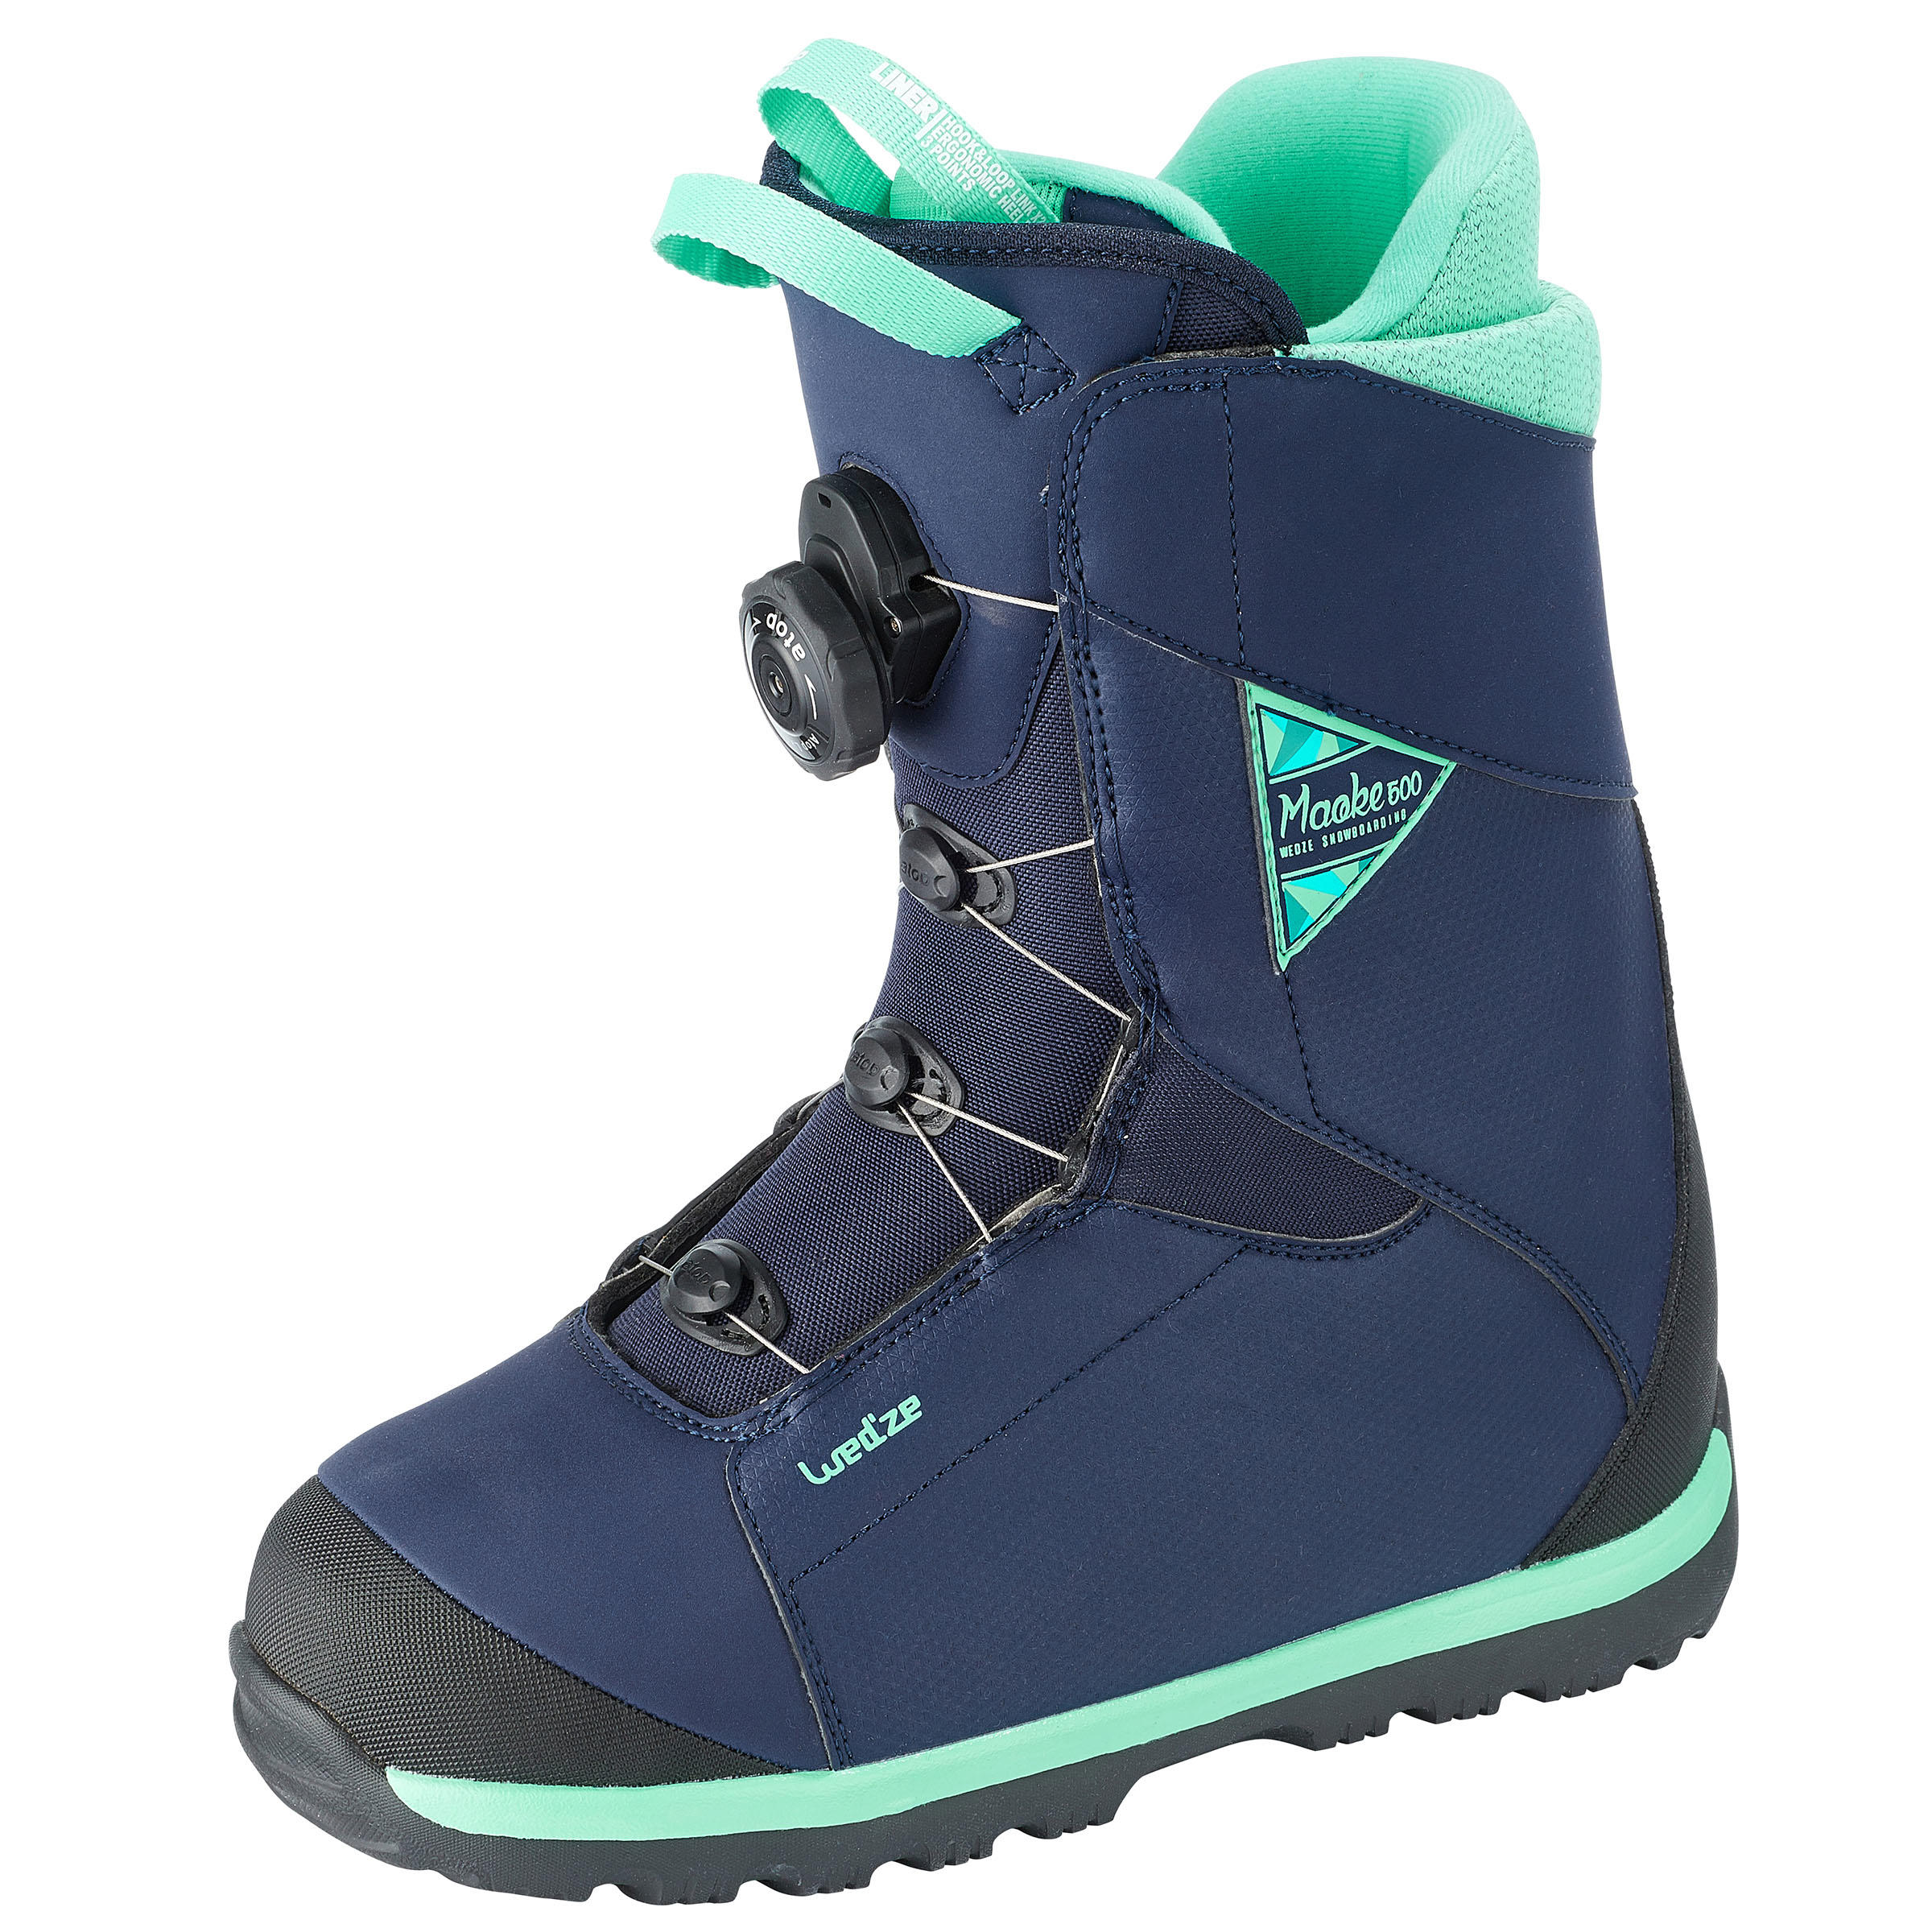 Wed'ze Snowboard boots all mountain dames Maoke 500 - Cable Lock thumbnail